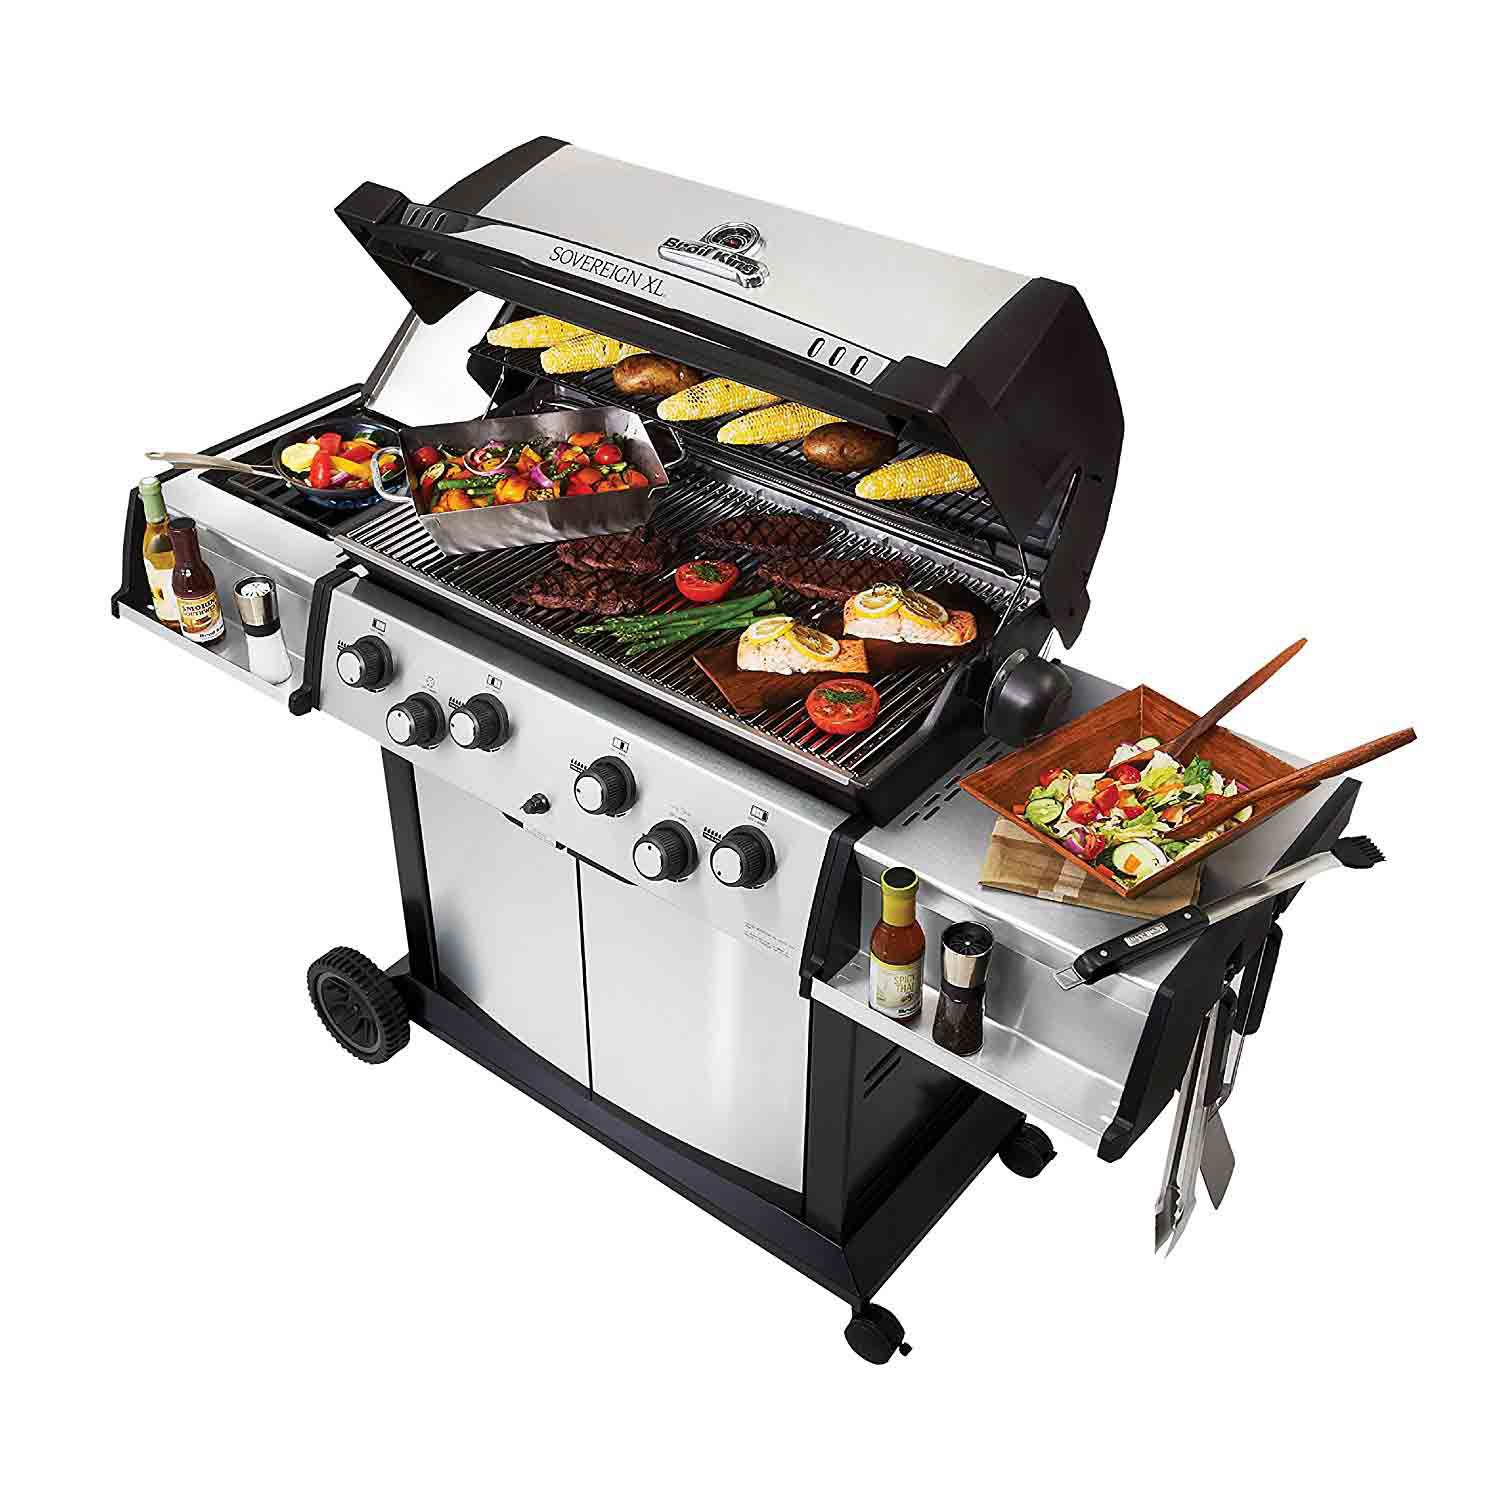 Top 10 Gas Grills between $500 and $1 000 for 2017